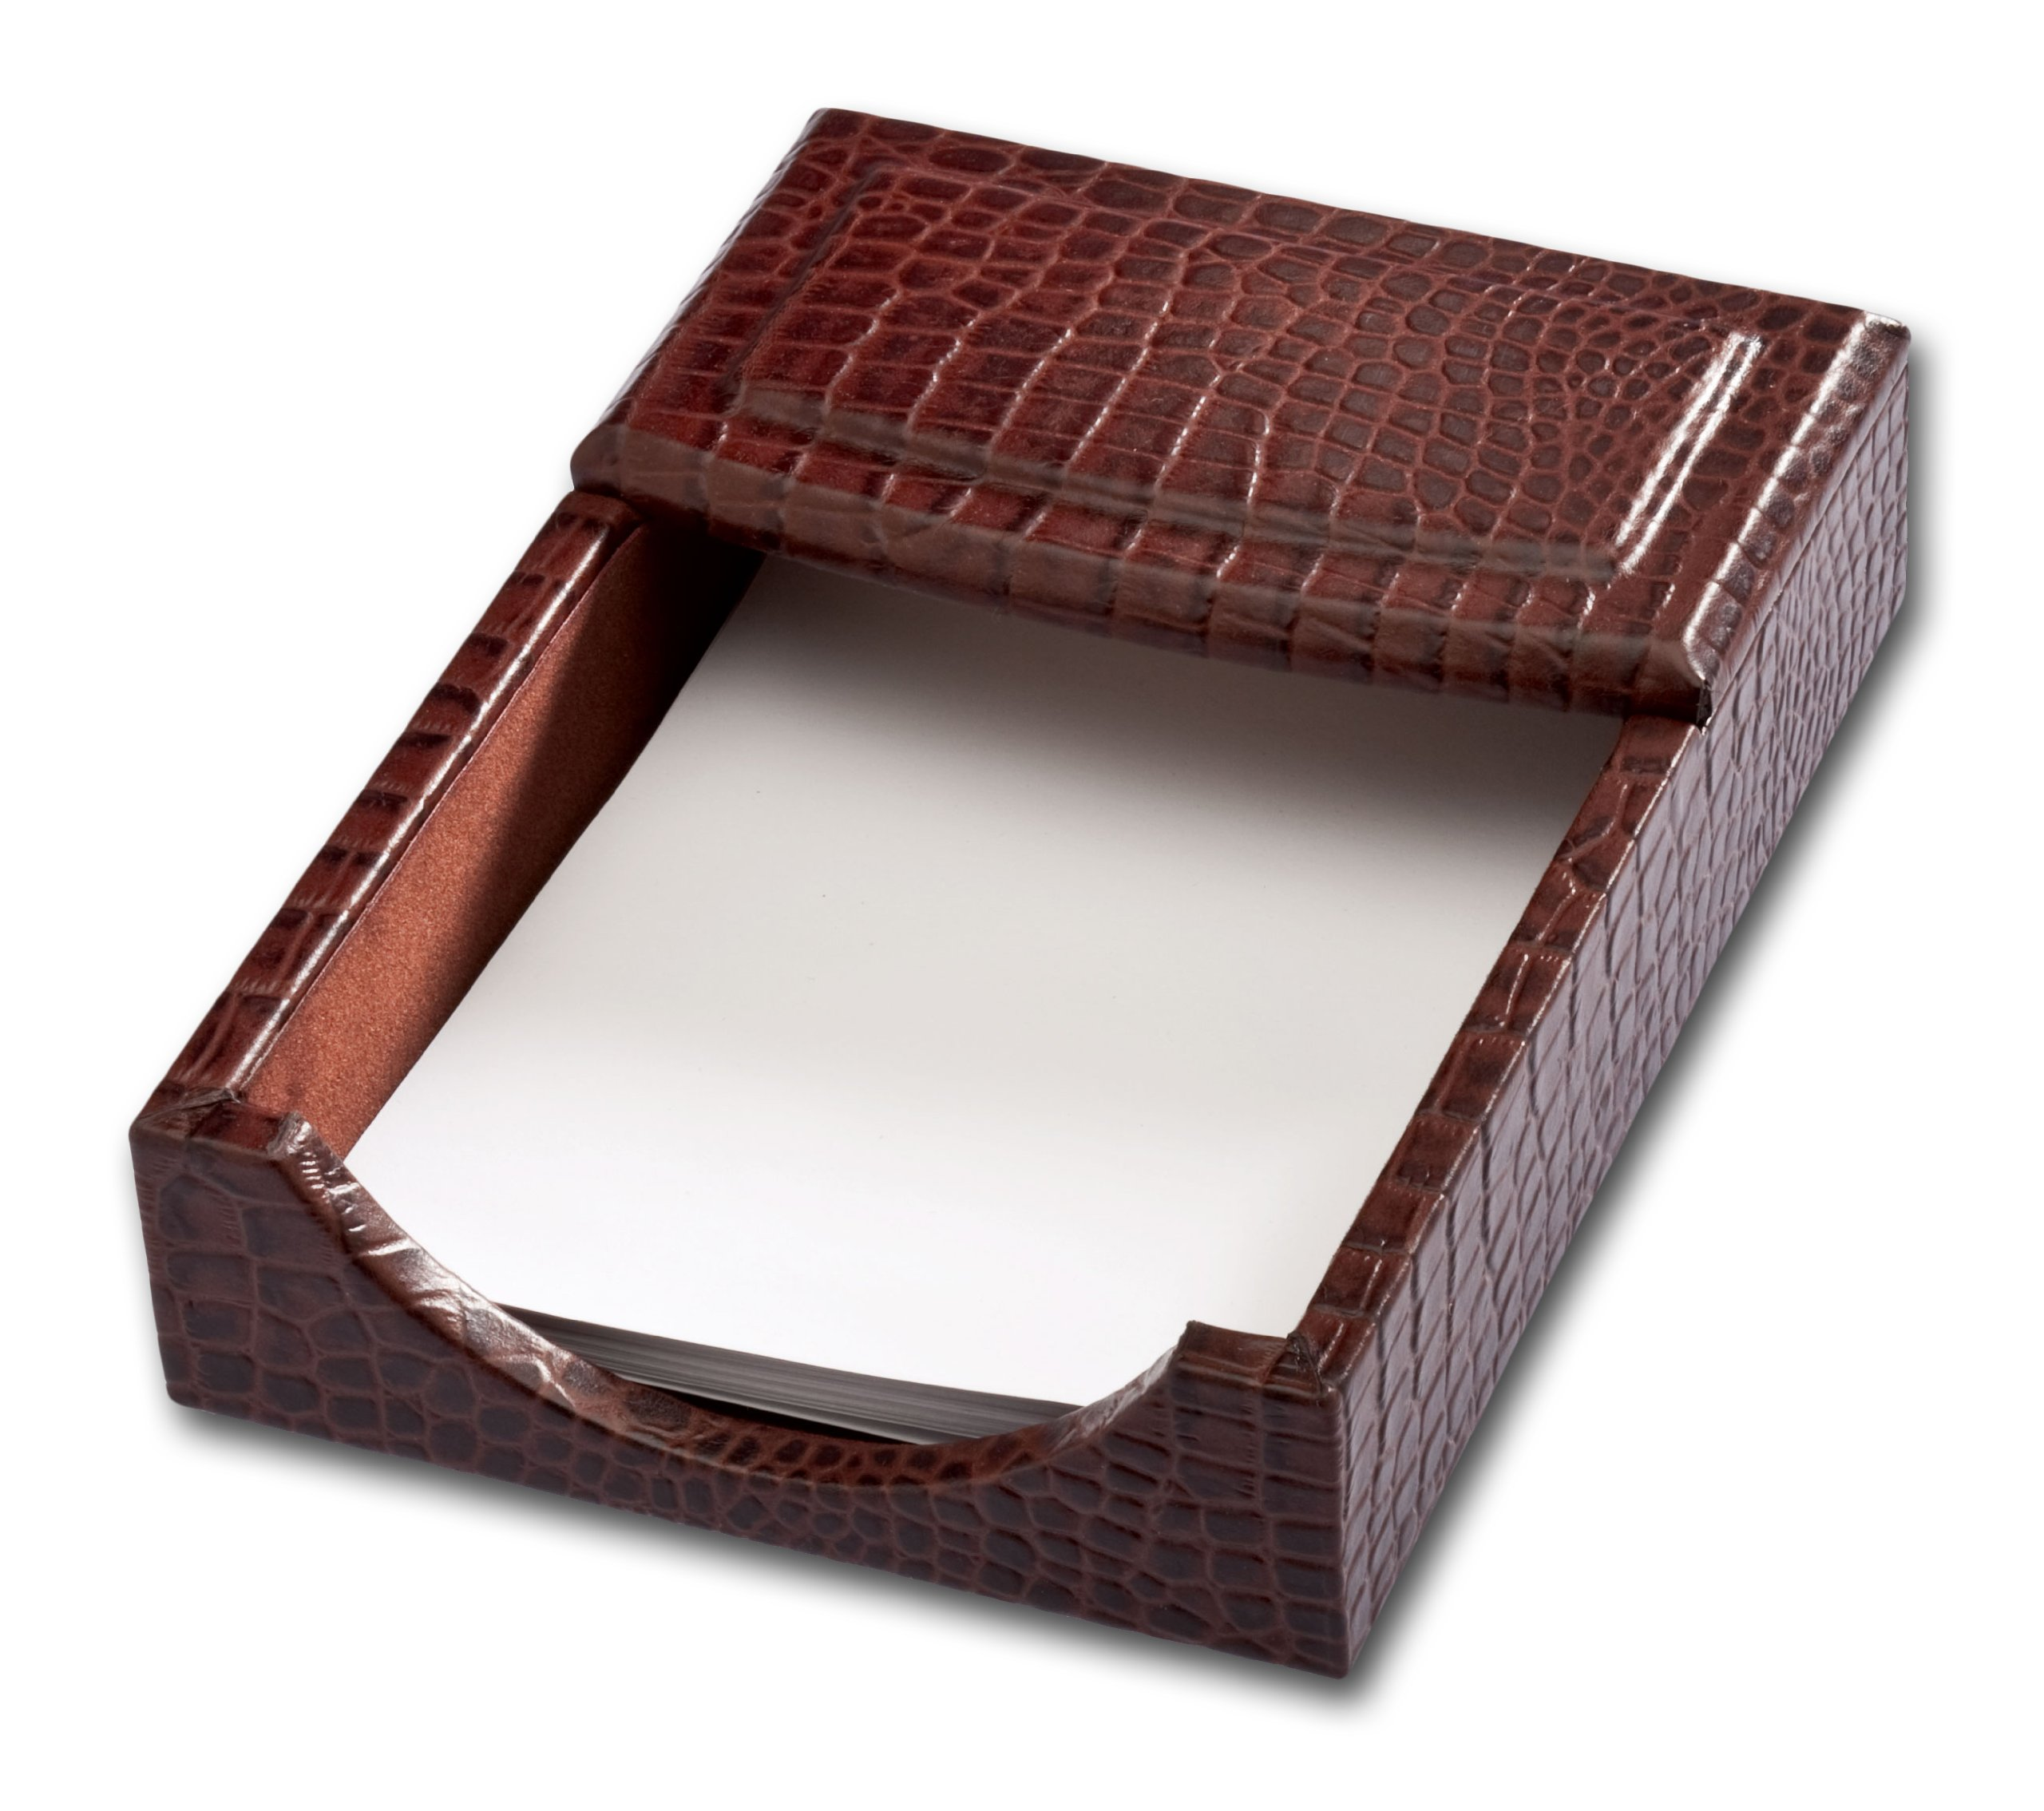 Dacasso Brown Crocodile Embossed Leather Memo Holder, 4-Inch by 6-Inch by Dacasso